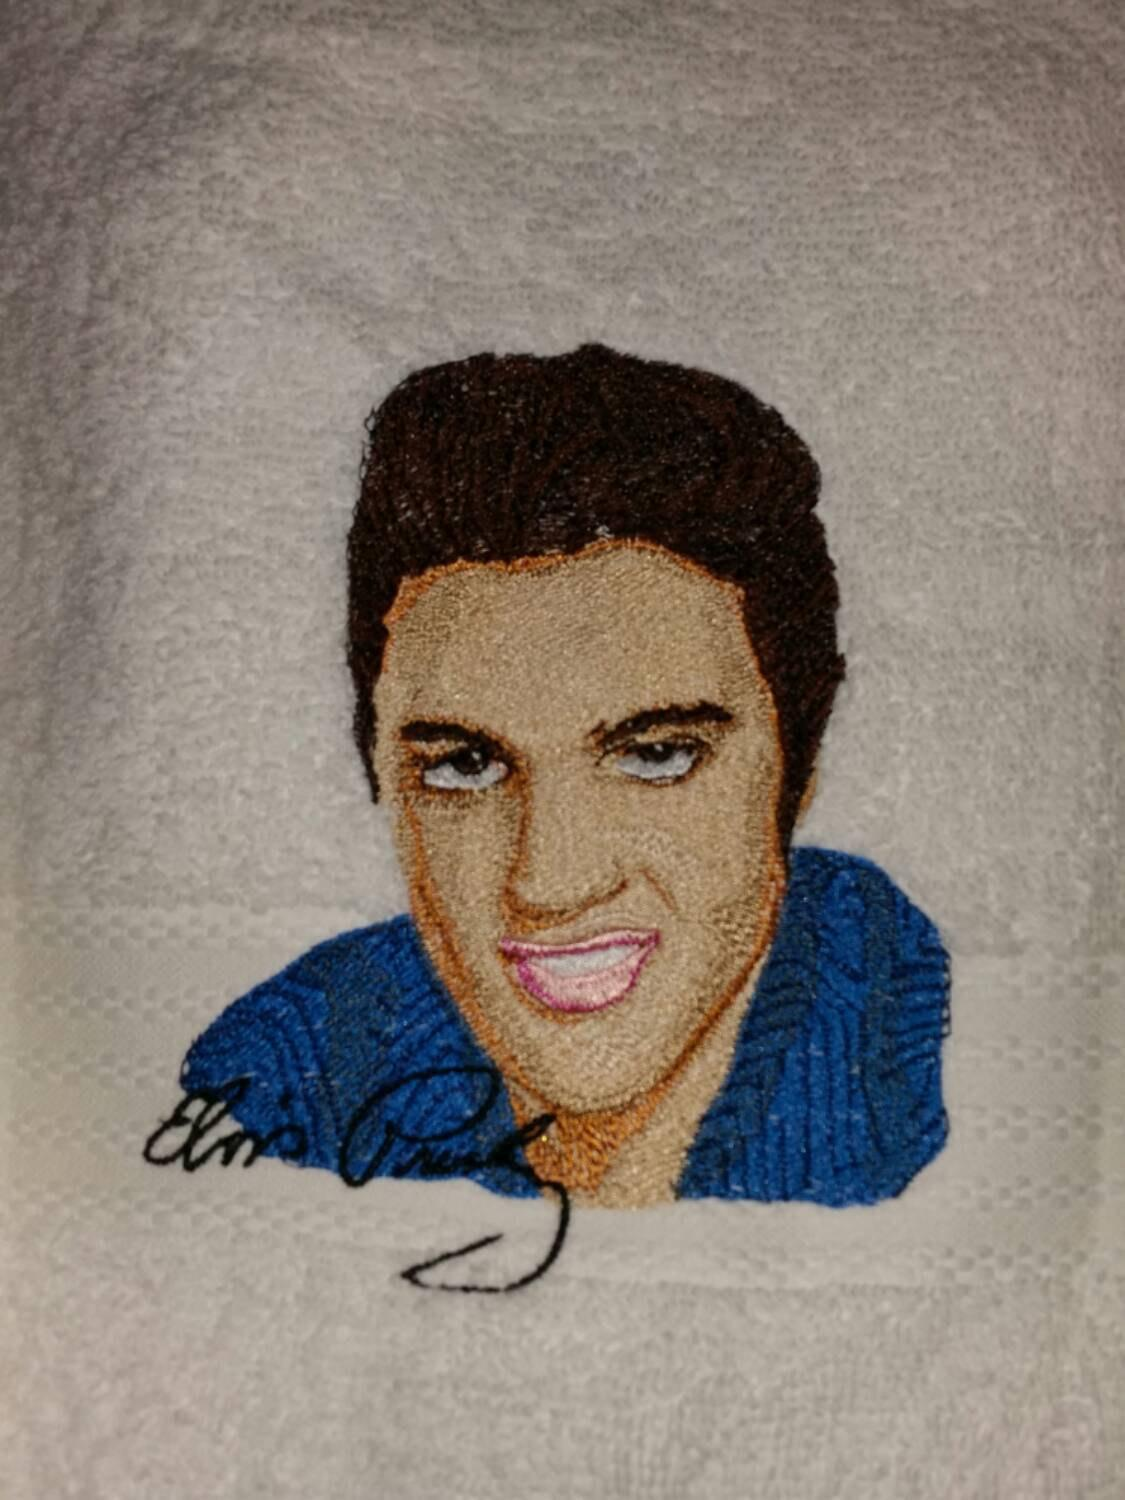 Elvis Presley embroidery design